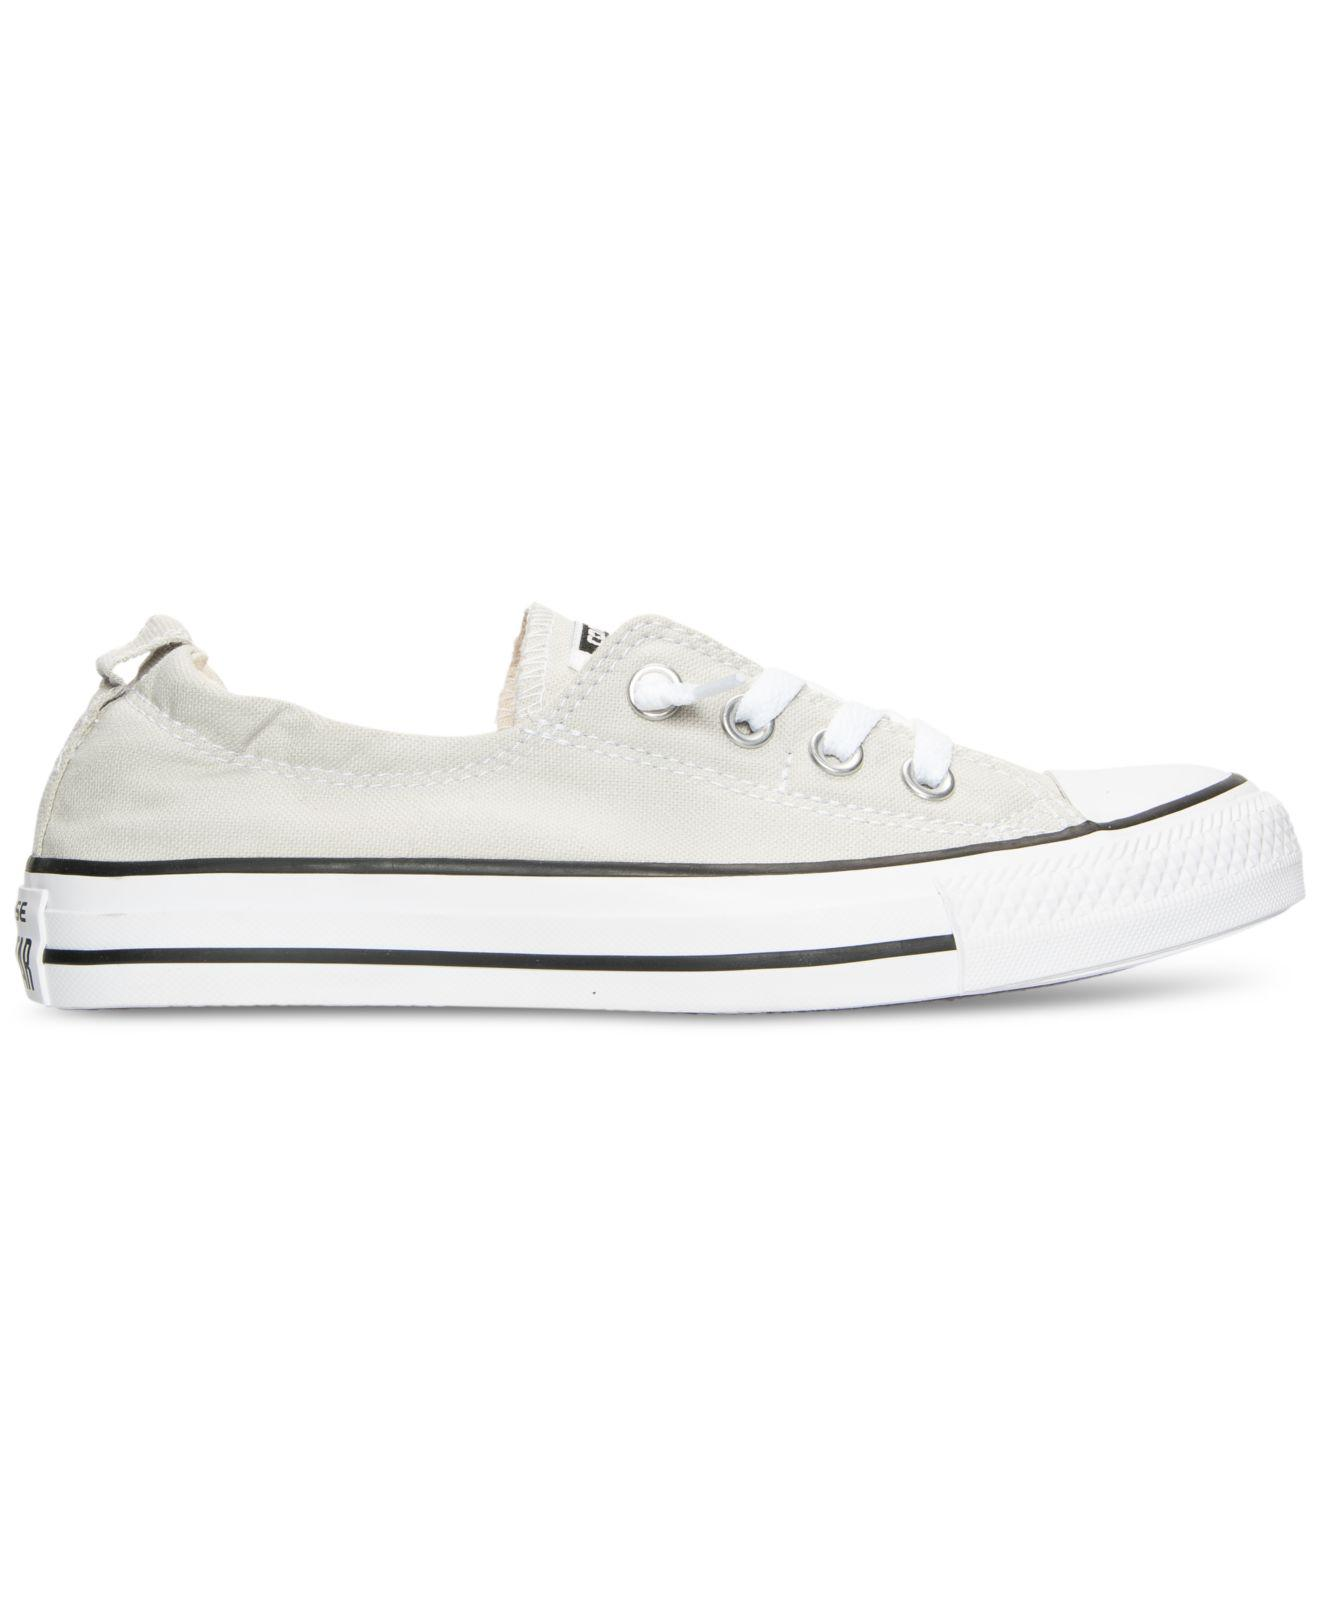 0a179e9d3c7 Lyst - Converse Women s Chuck Taylor Shoreline Casual Sneakers From Finish  Line in White